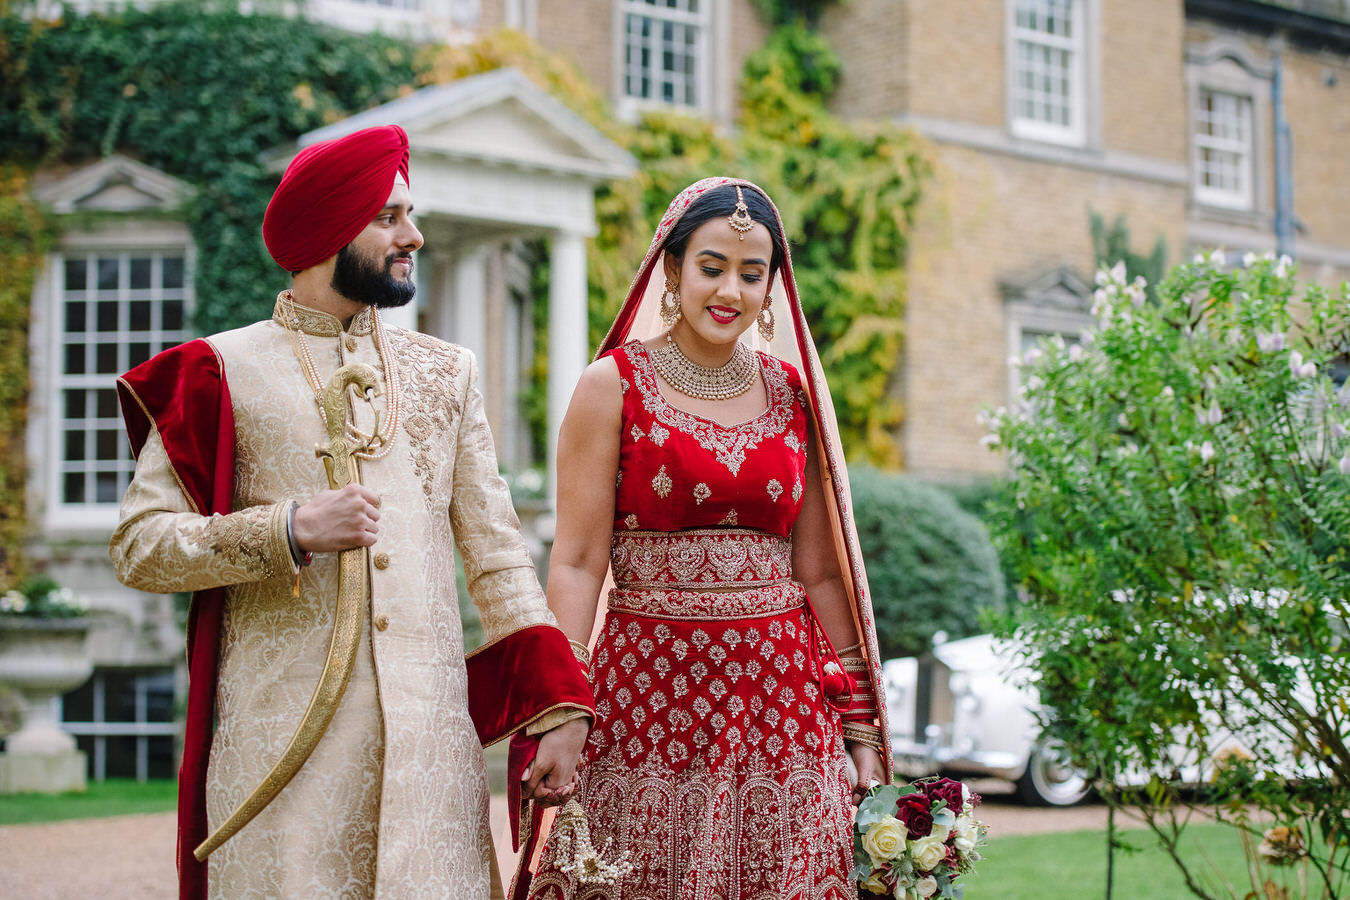 Sikh bride in a bridal long lehenga with Sikh groom in a Punjabi outfit with his kirpan in right hand walking in front of Hampton Court